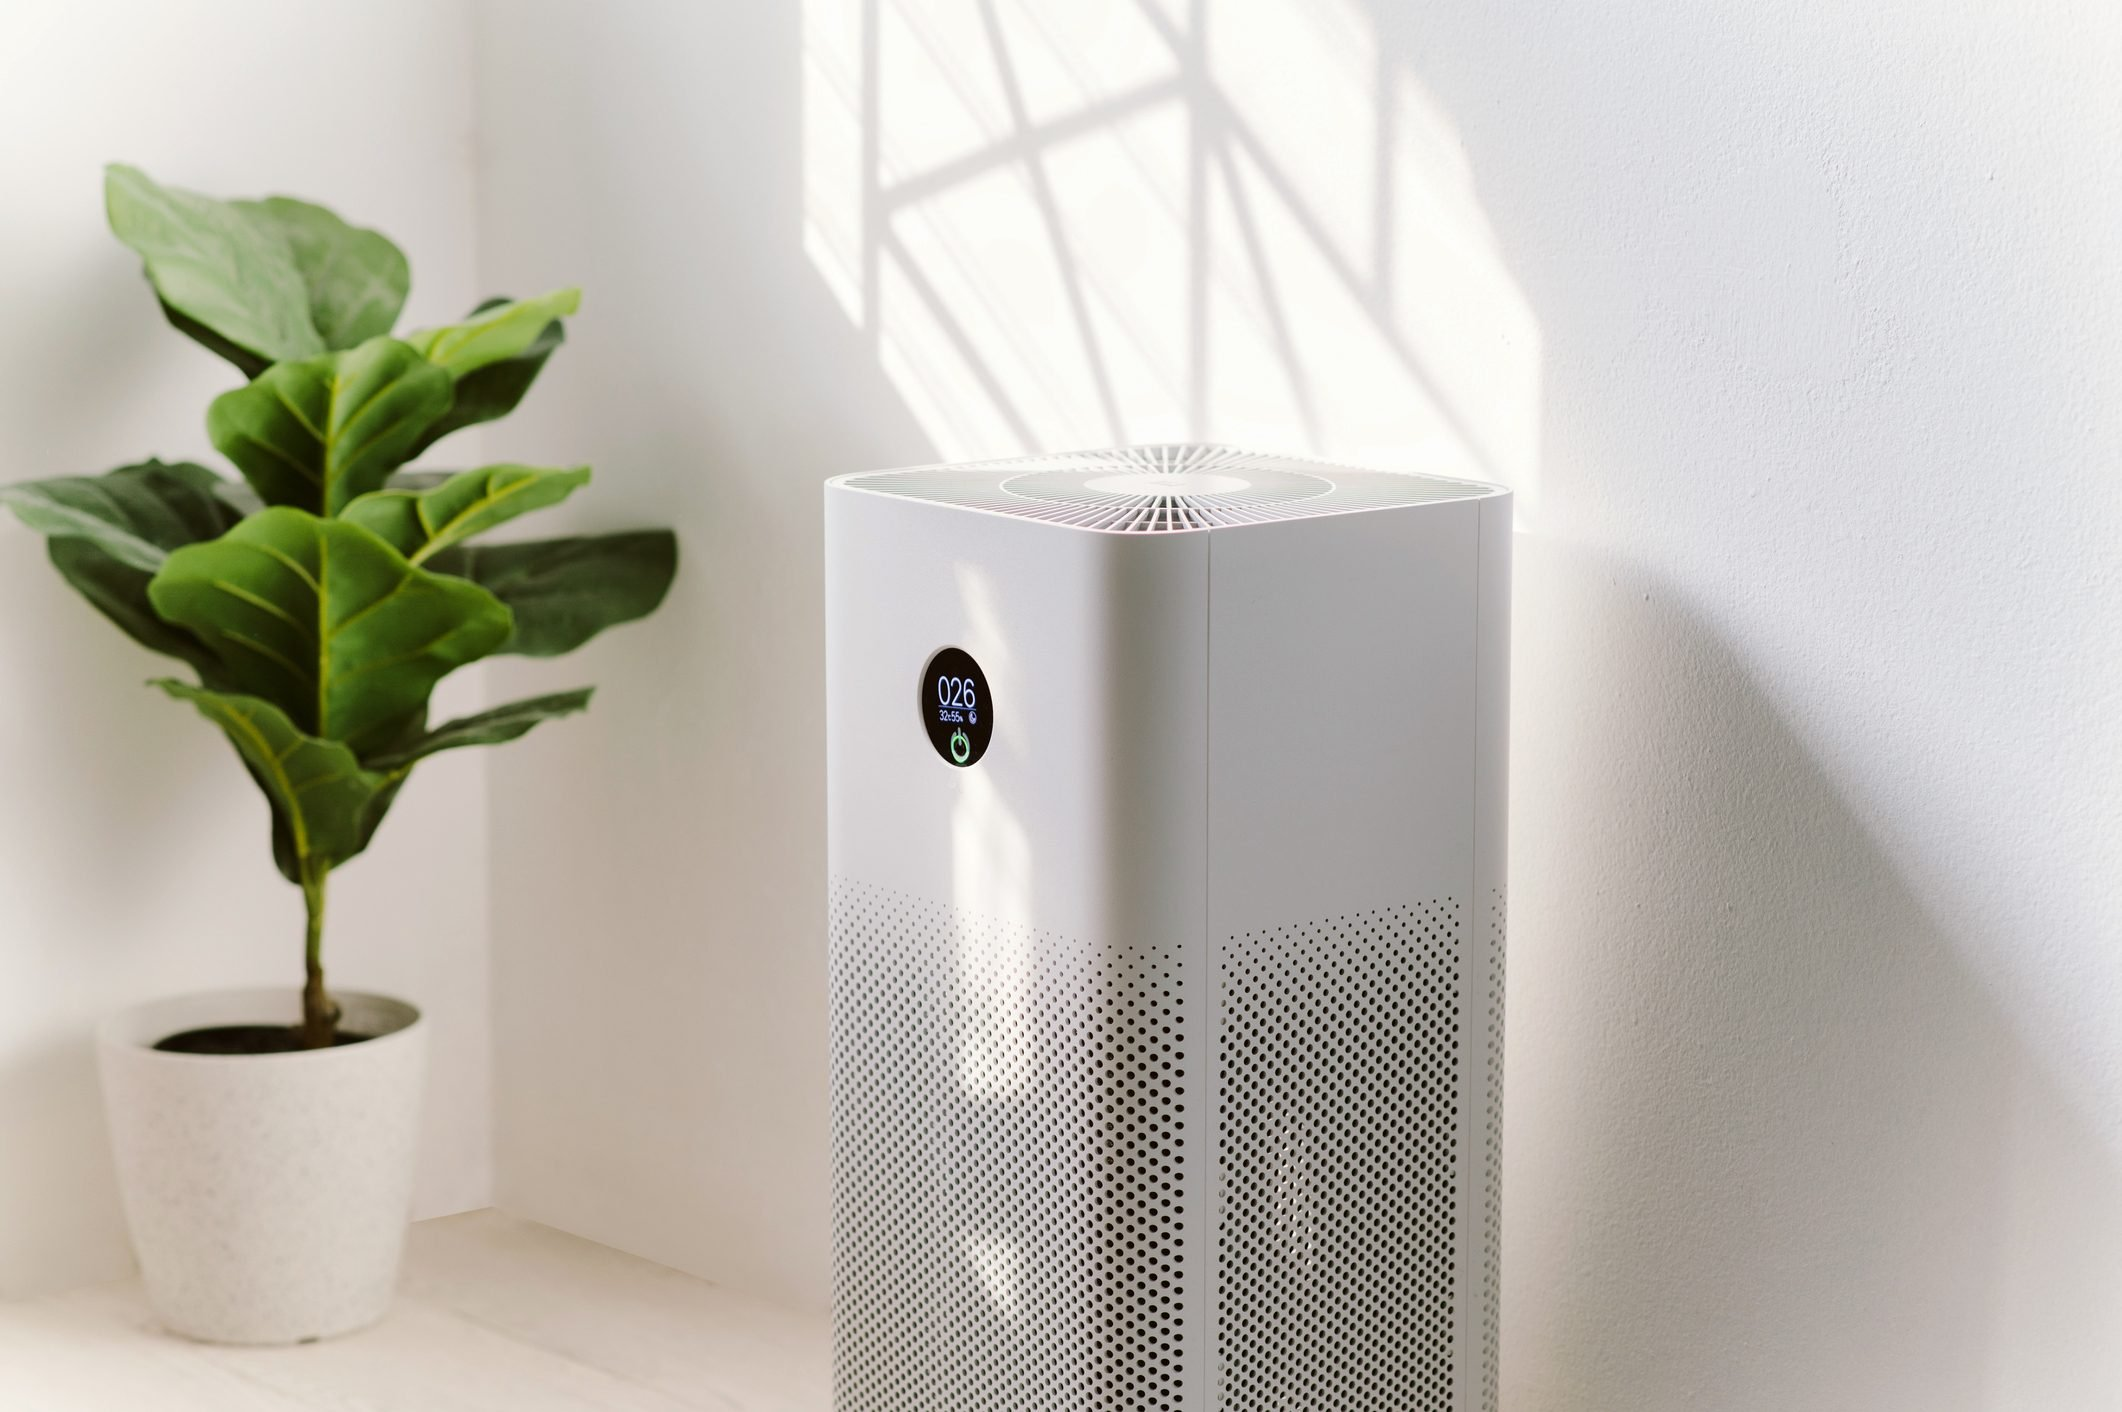 Probably The Most Ignored Fact About Air Purifier